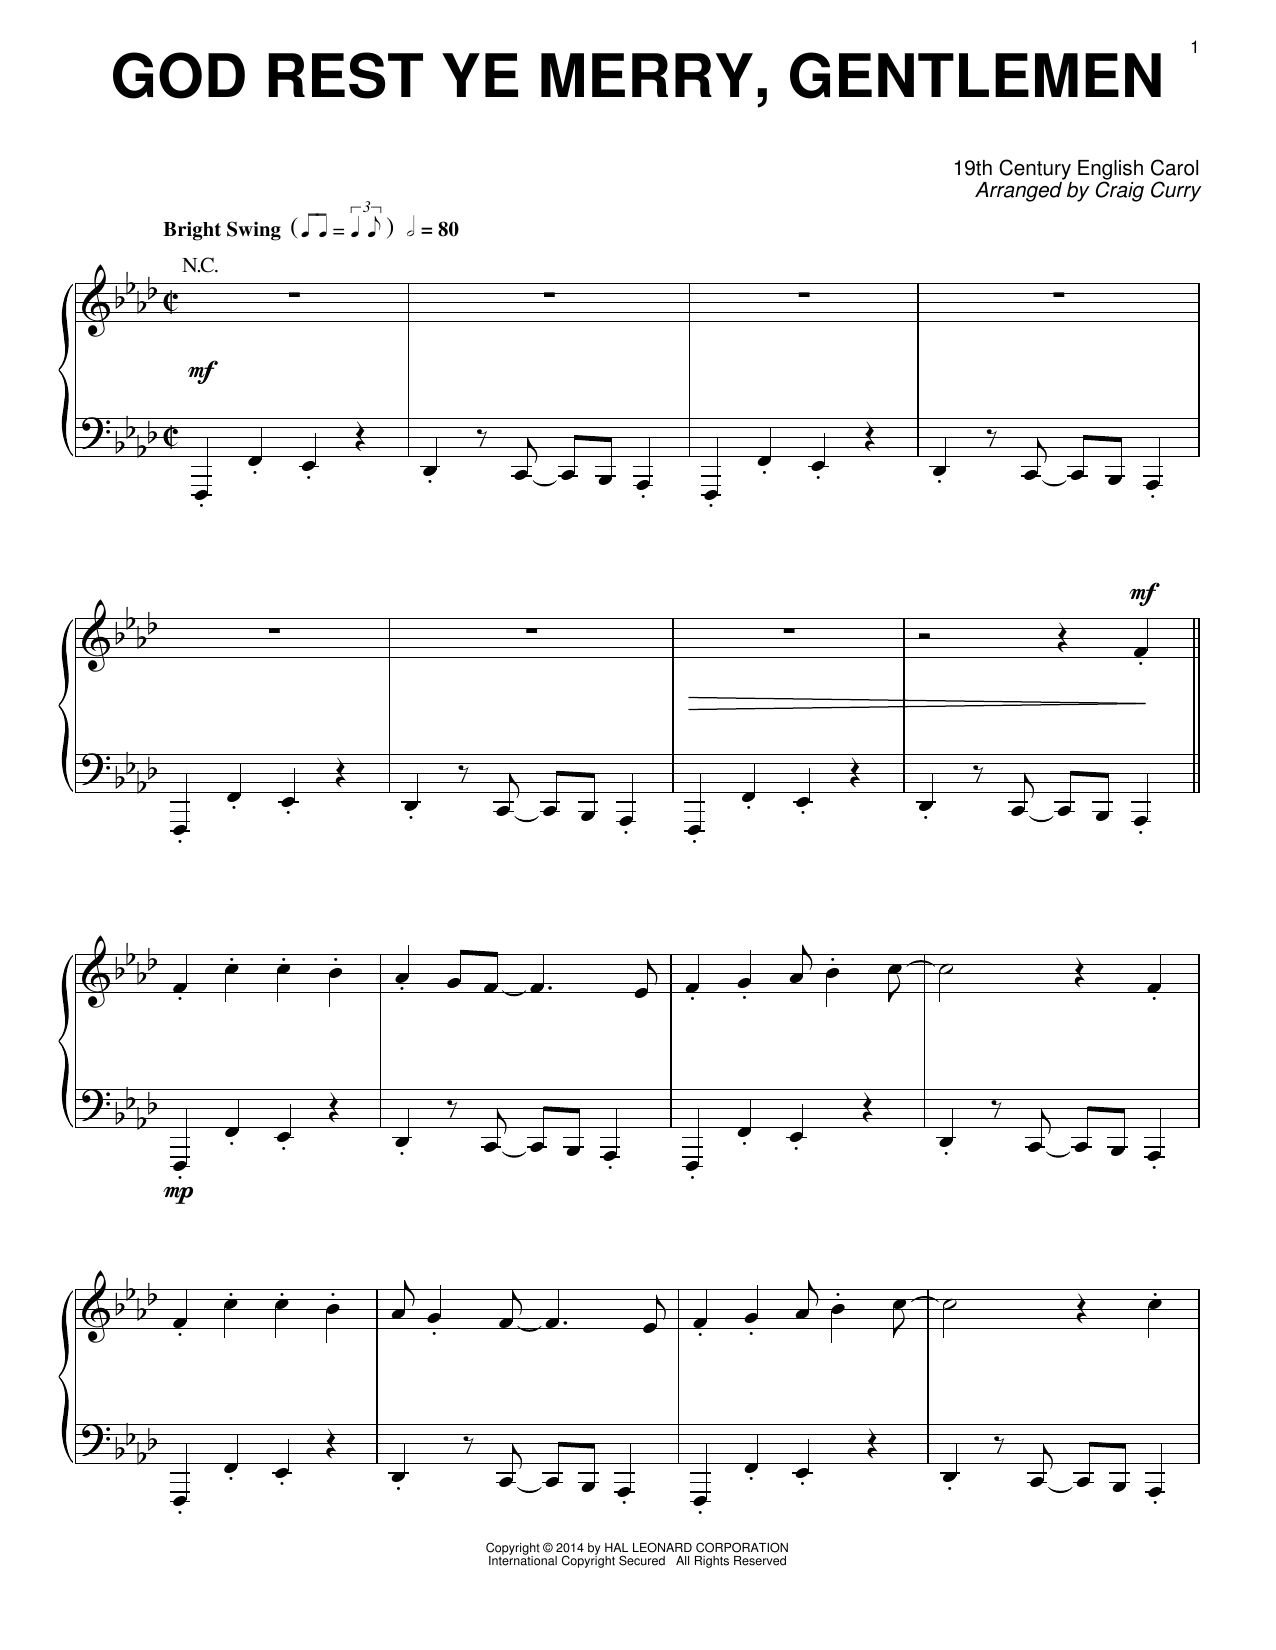 Craig Curry God Rest Ye Merry, Gentlemen sheet music notes and chords. Download Printable PDF.